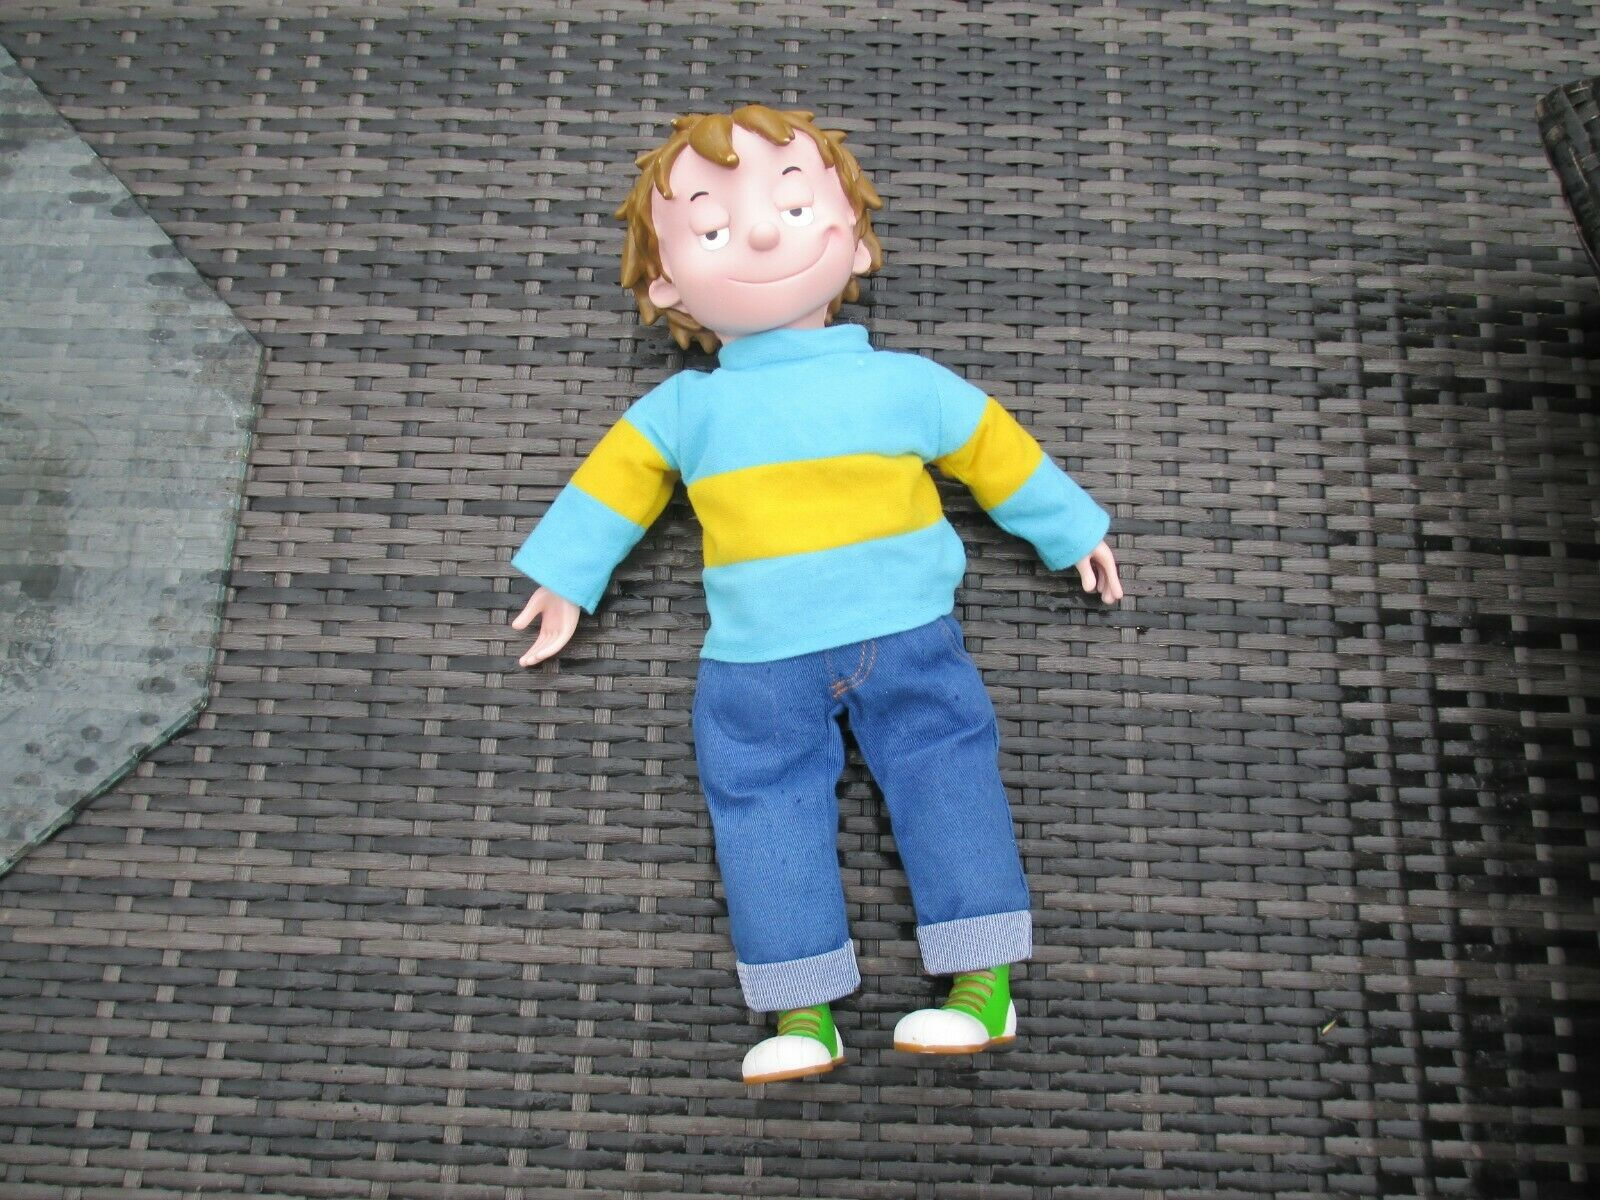 Genuine 2008 Horrid Horrid Horrid Henry - Talking Interactive Plush Doll Toy Figure 17  Rare cab